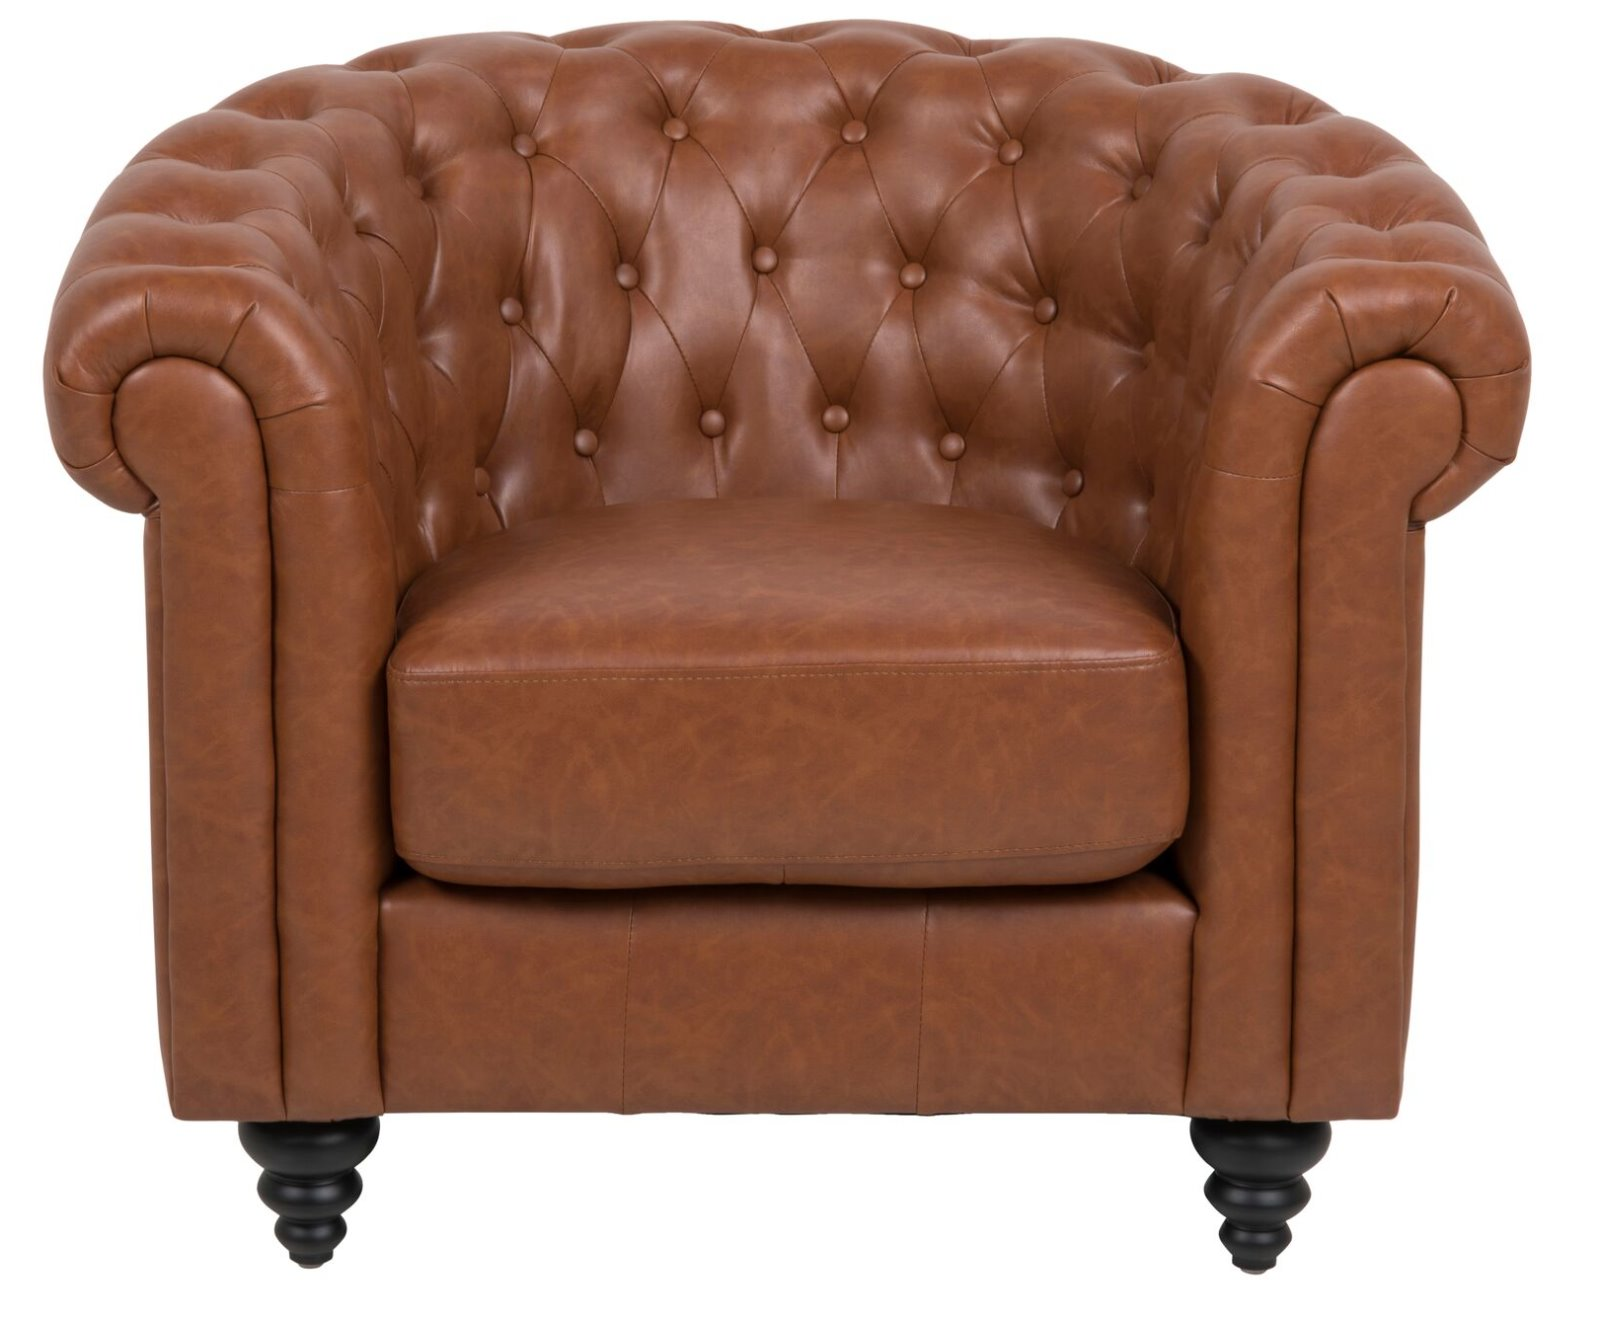 Cognac Sessel Pkline Sessel Charlie In Vintage Cognac Chesterfield Design Clubsessel